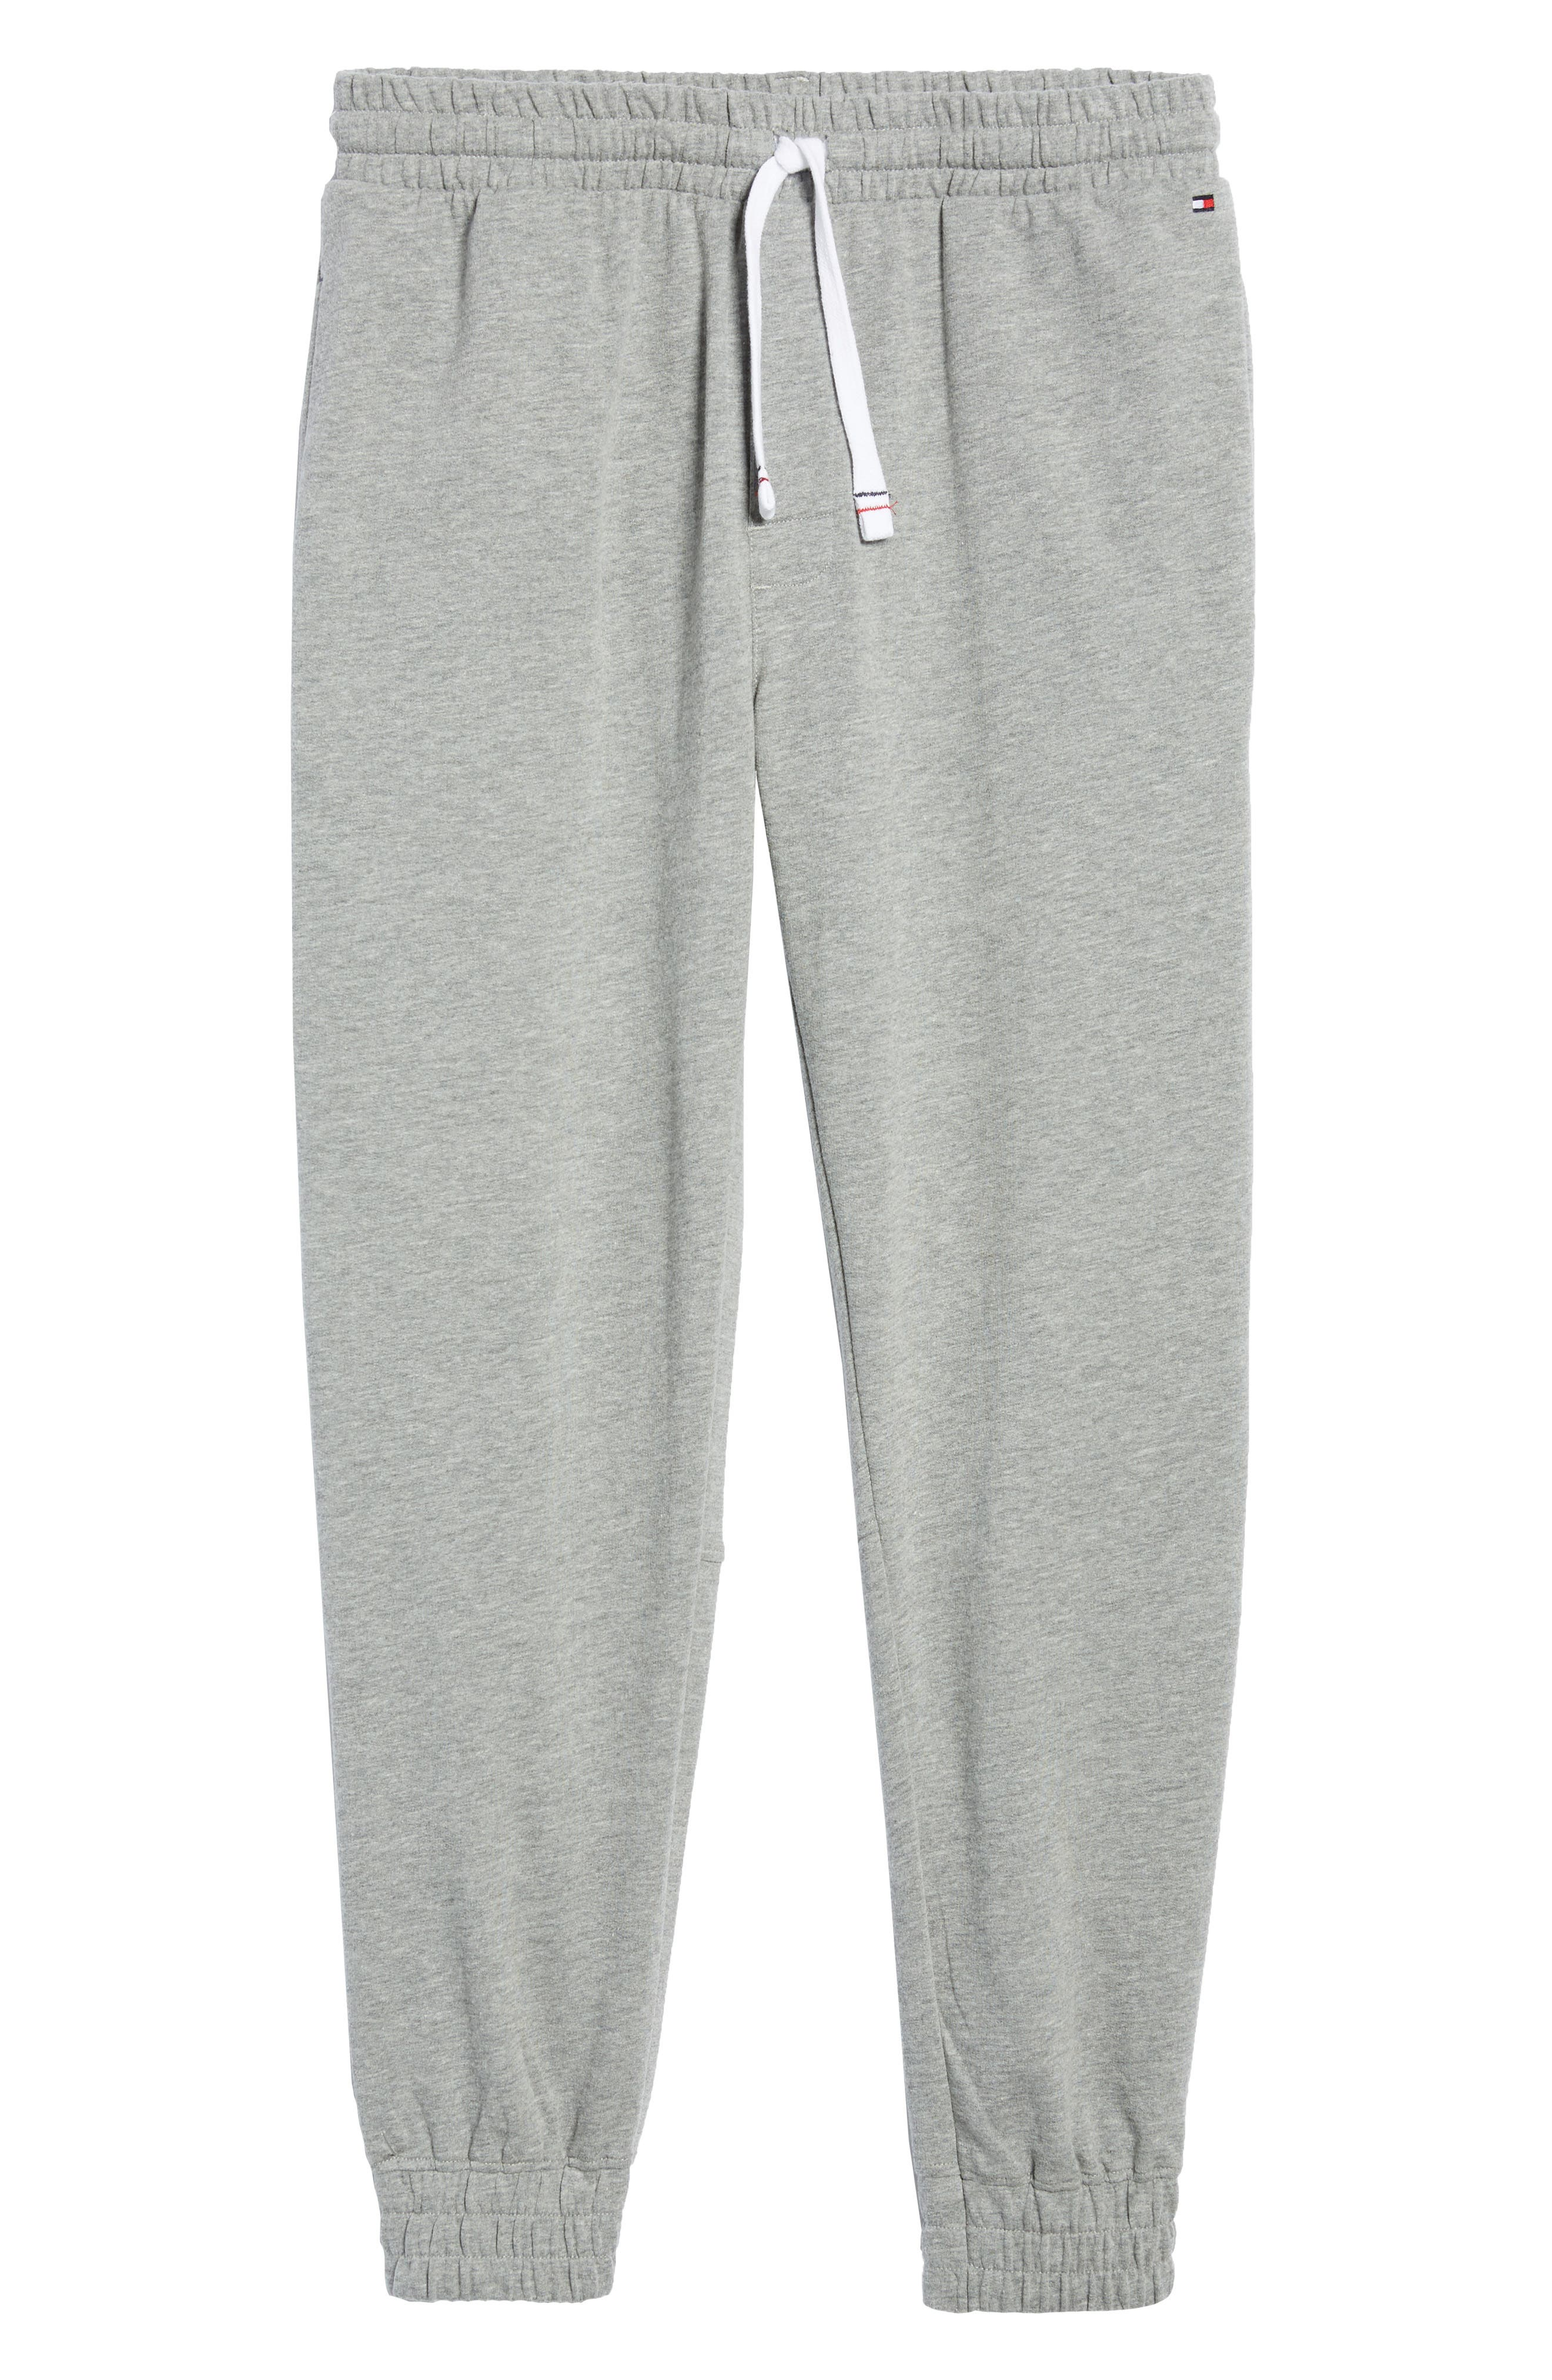 Jogger Lounge Pants,                             Alternate thumbnail 6, color,                             Grey Heather